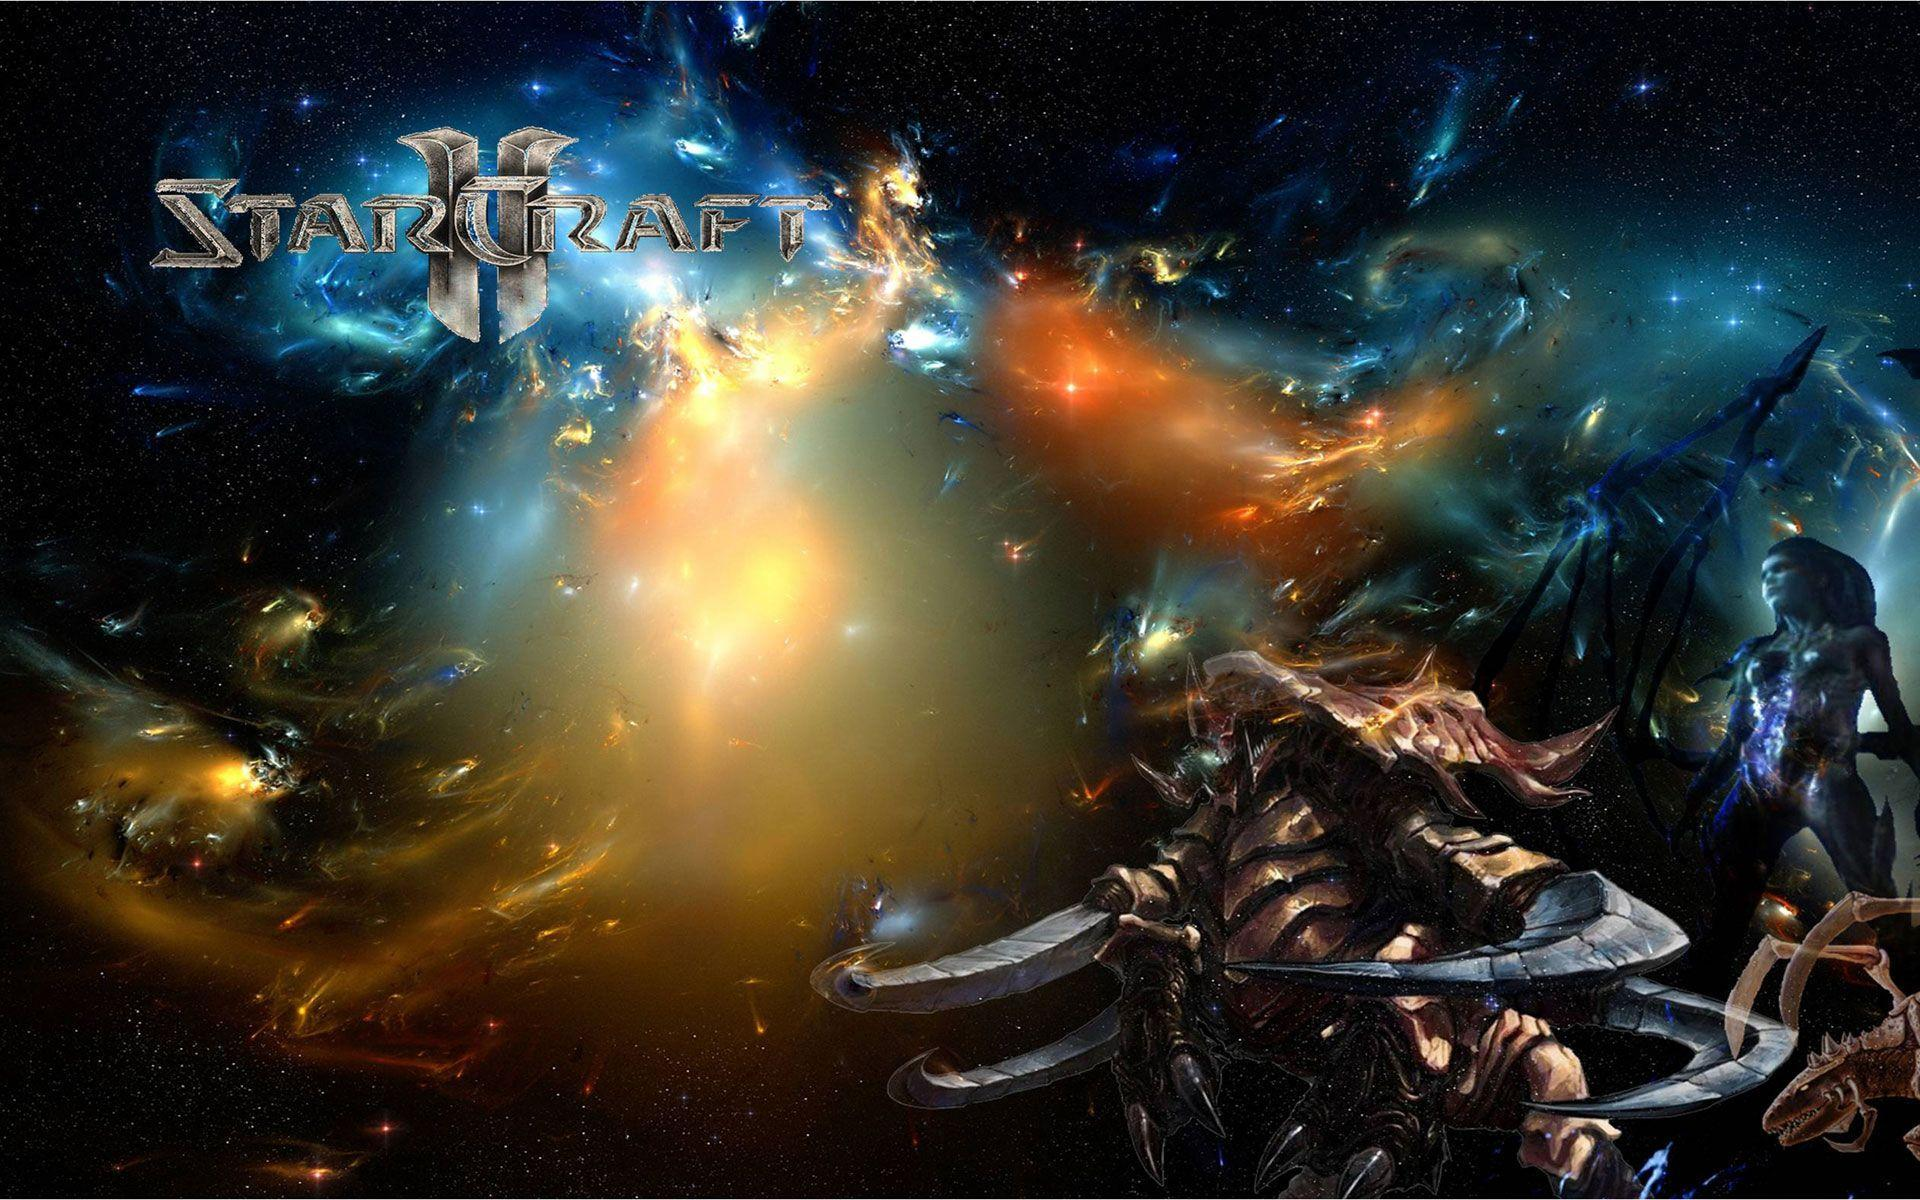 starcraft wallpaper - photo #19